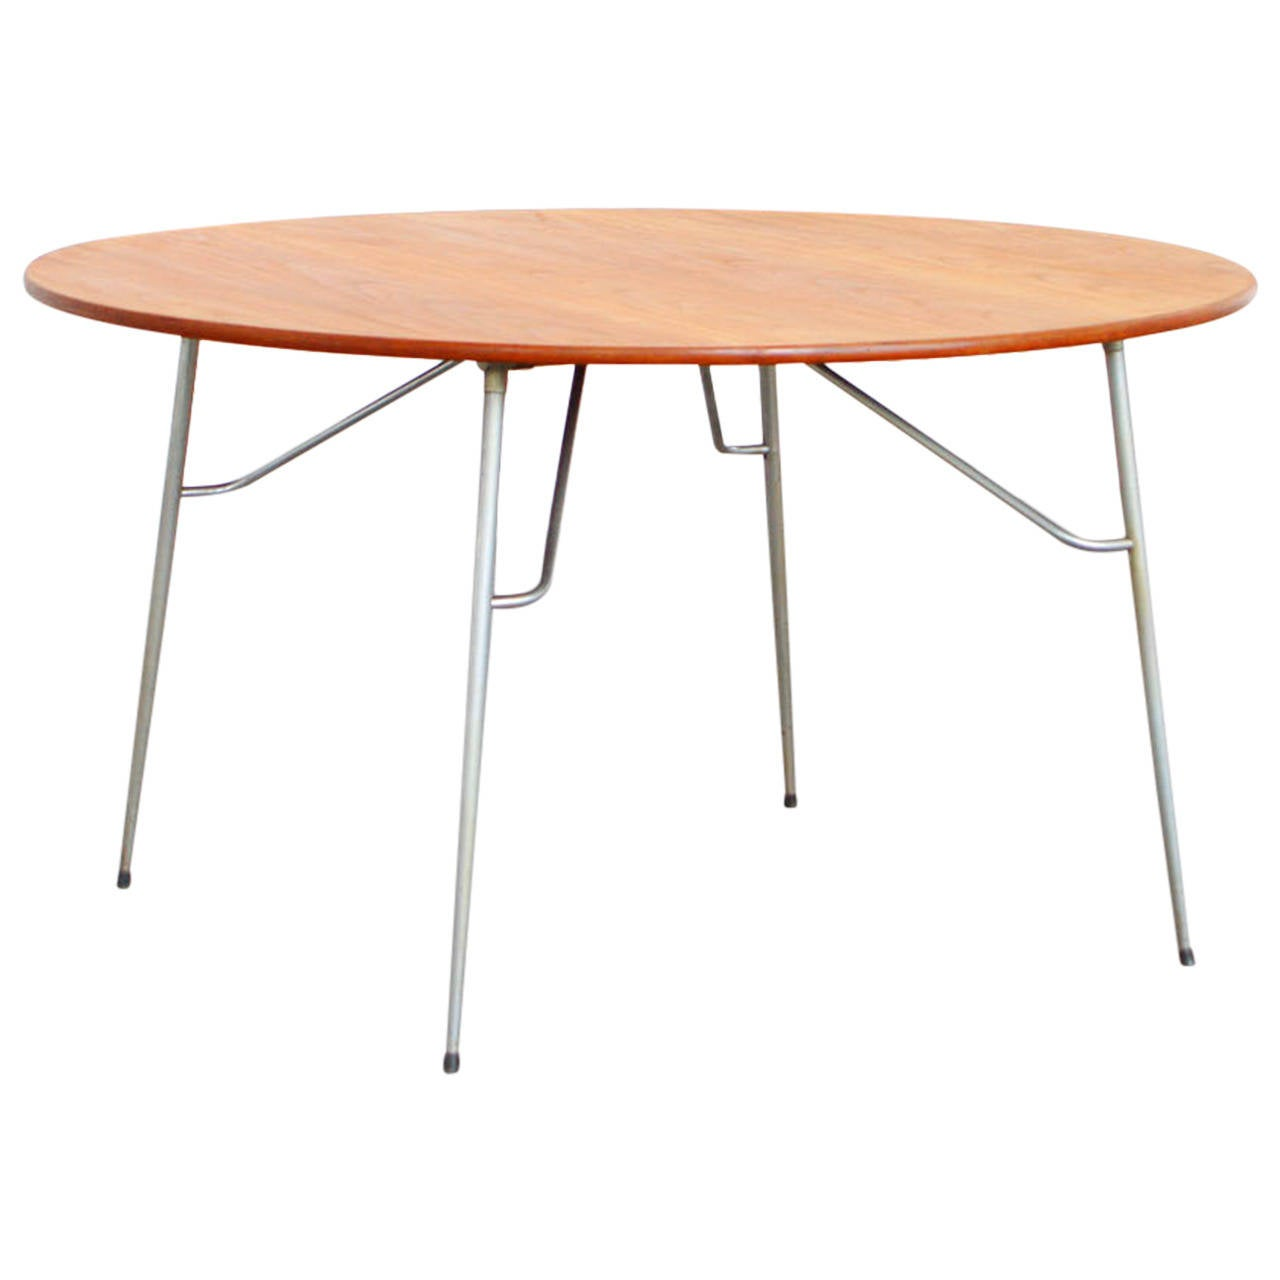 Pin Stainless Steel Round Dining Table With Marble Top on  : 2571192l from pinstake.com size 1280 x 1280 jpeg 44kB